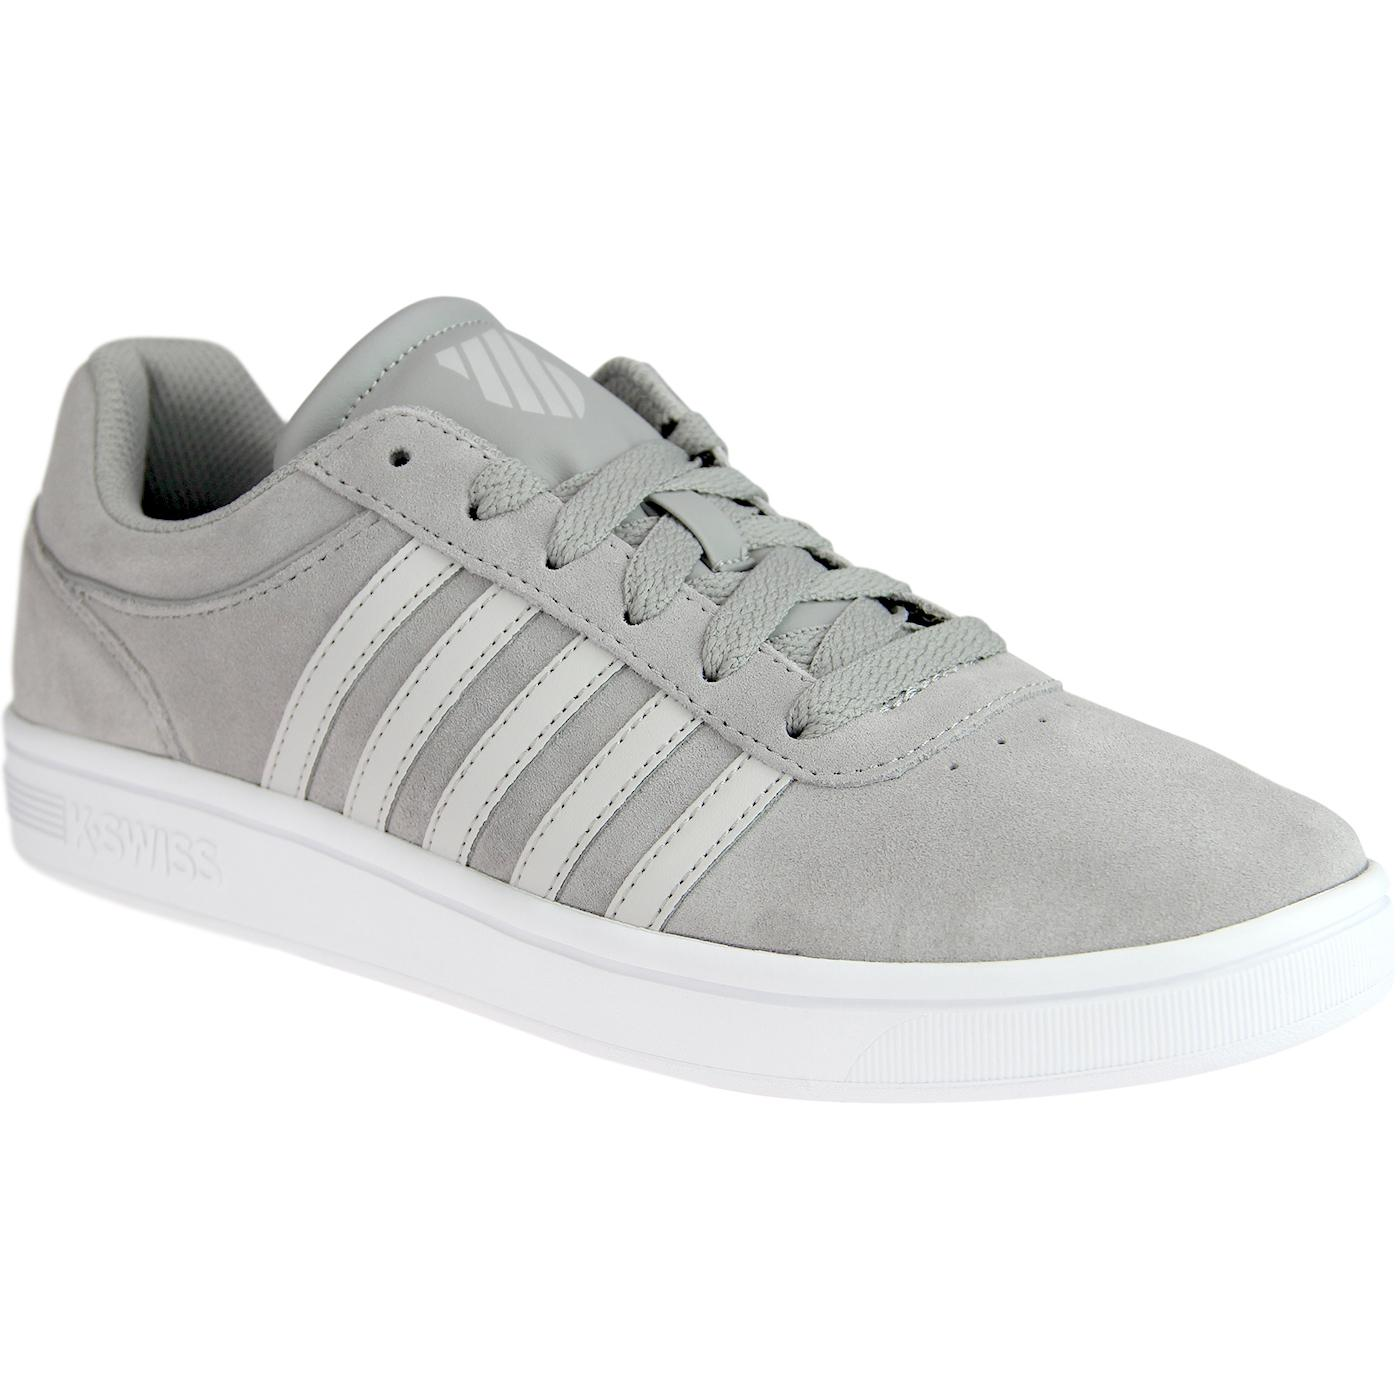 Court Cheswick K-SWISS Retro Suede Trainers (Grey)